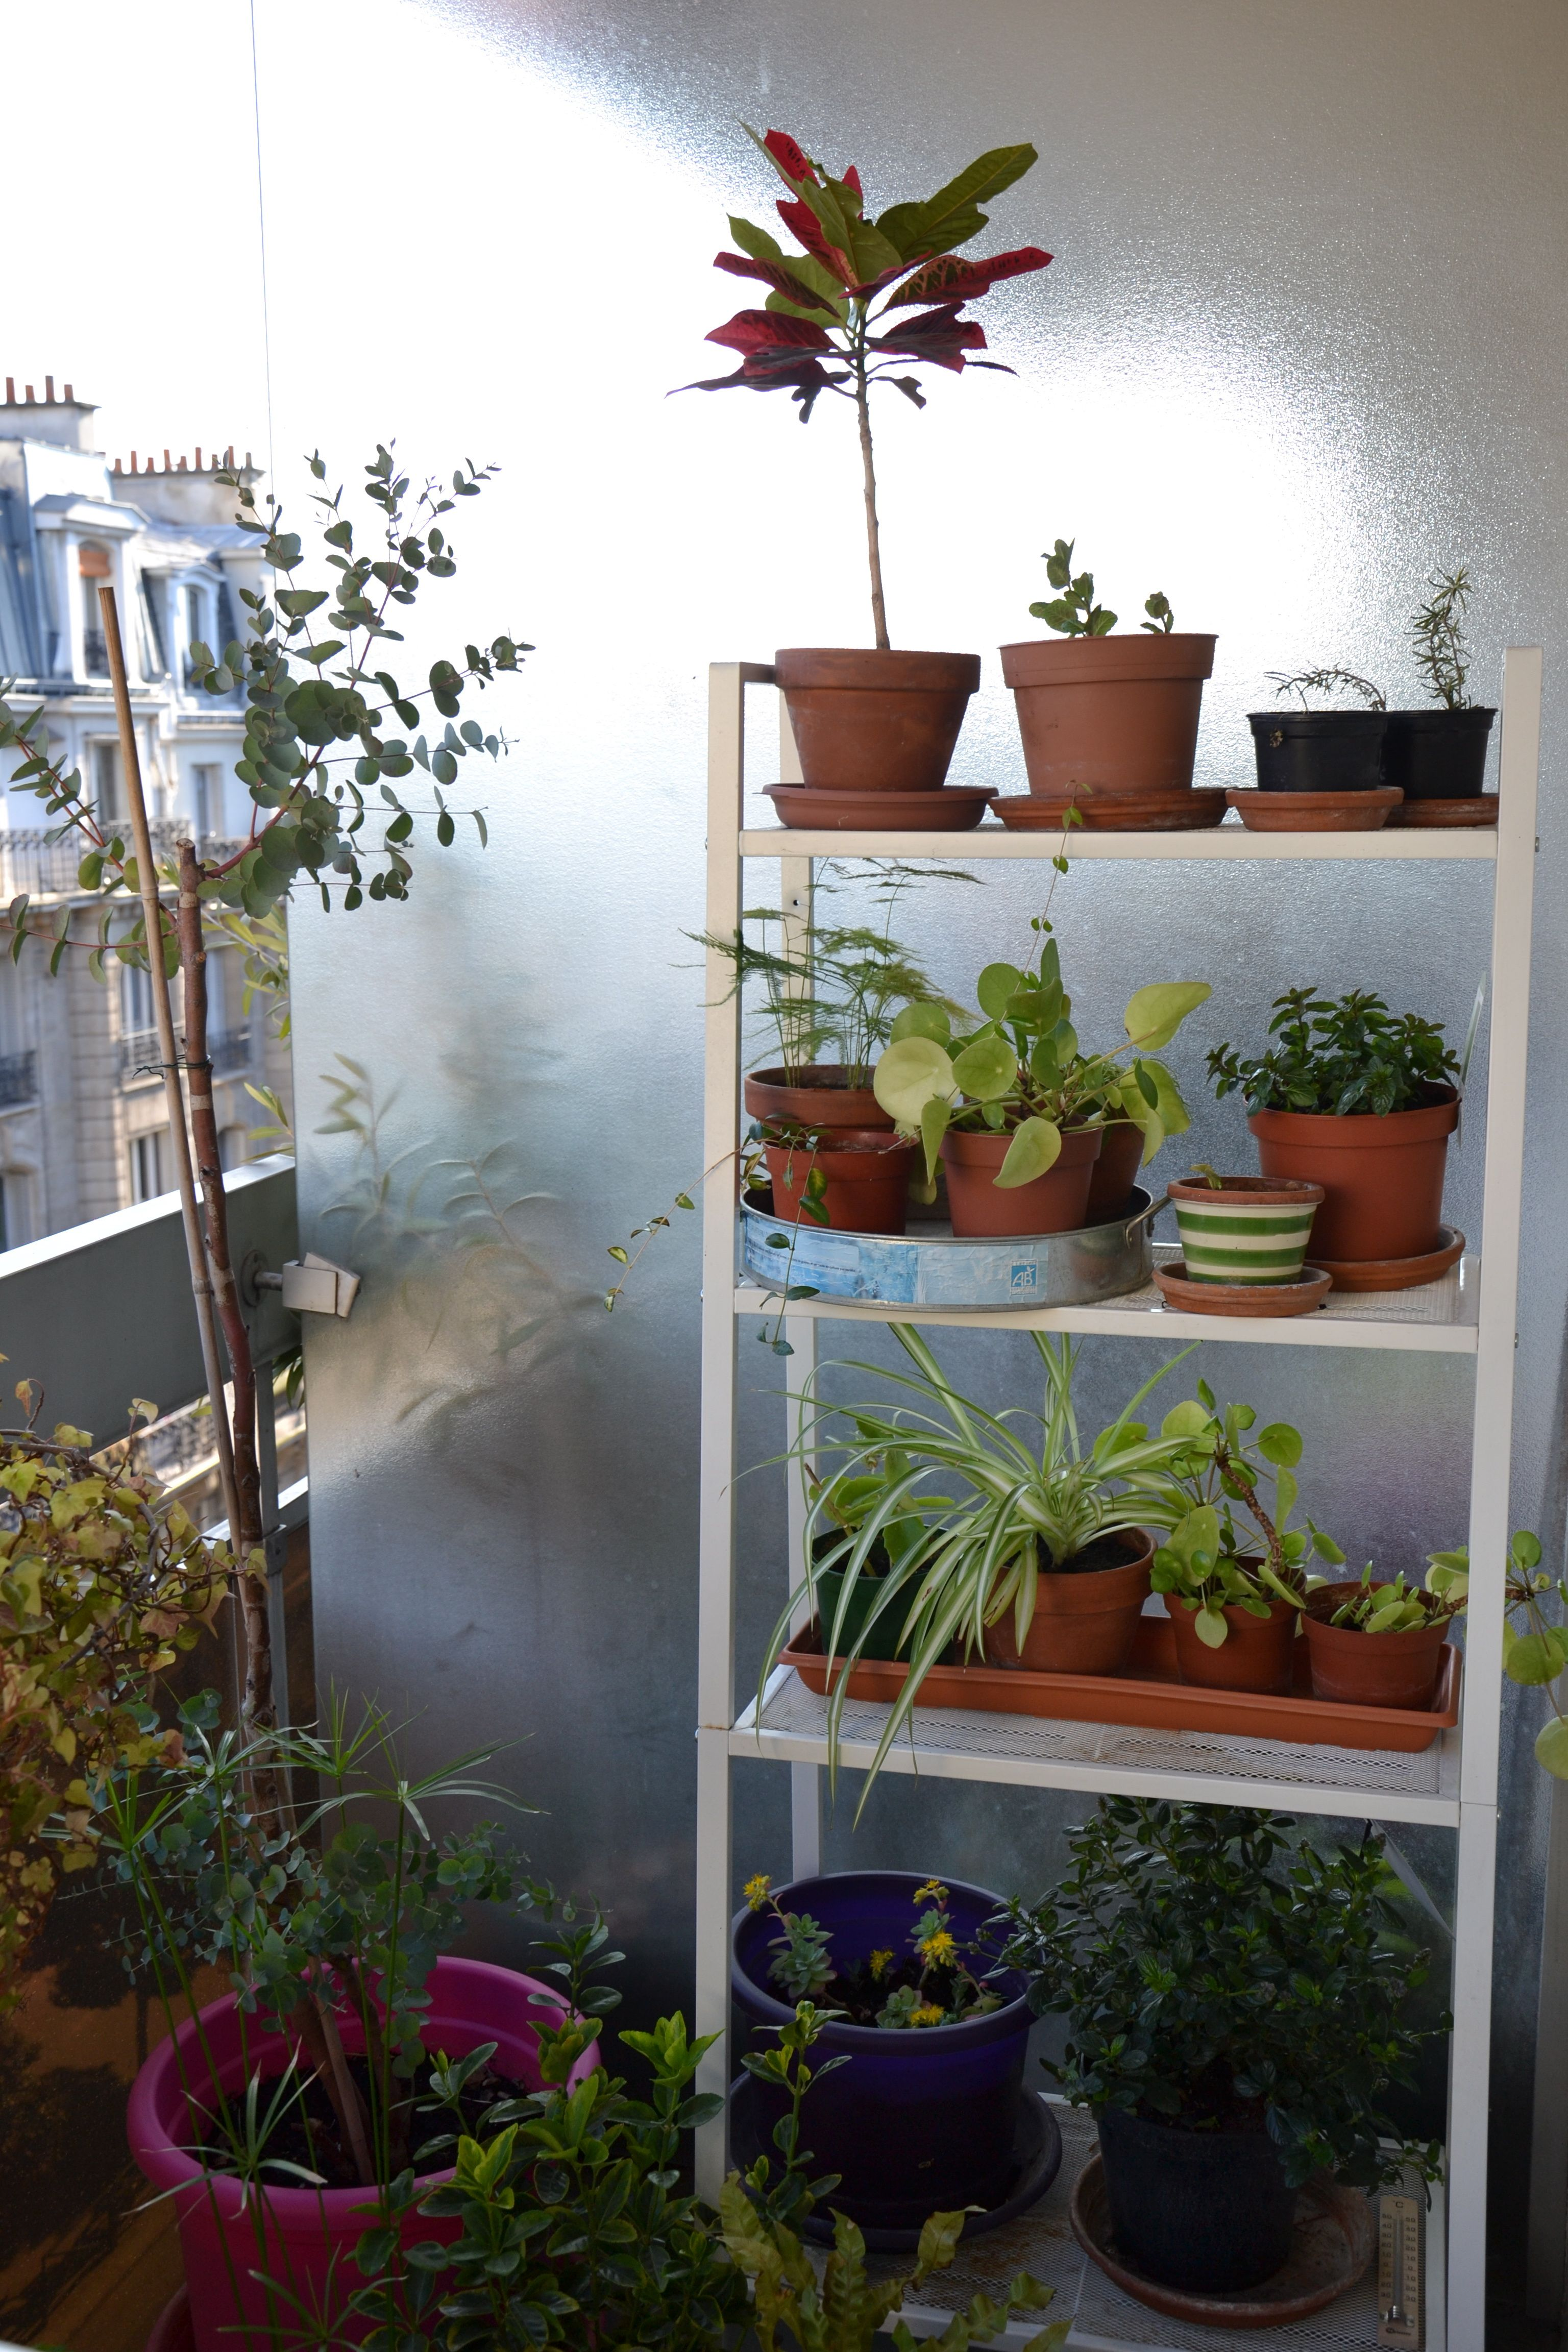 Another view of balcony corner with eucalyptus gunni